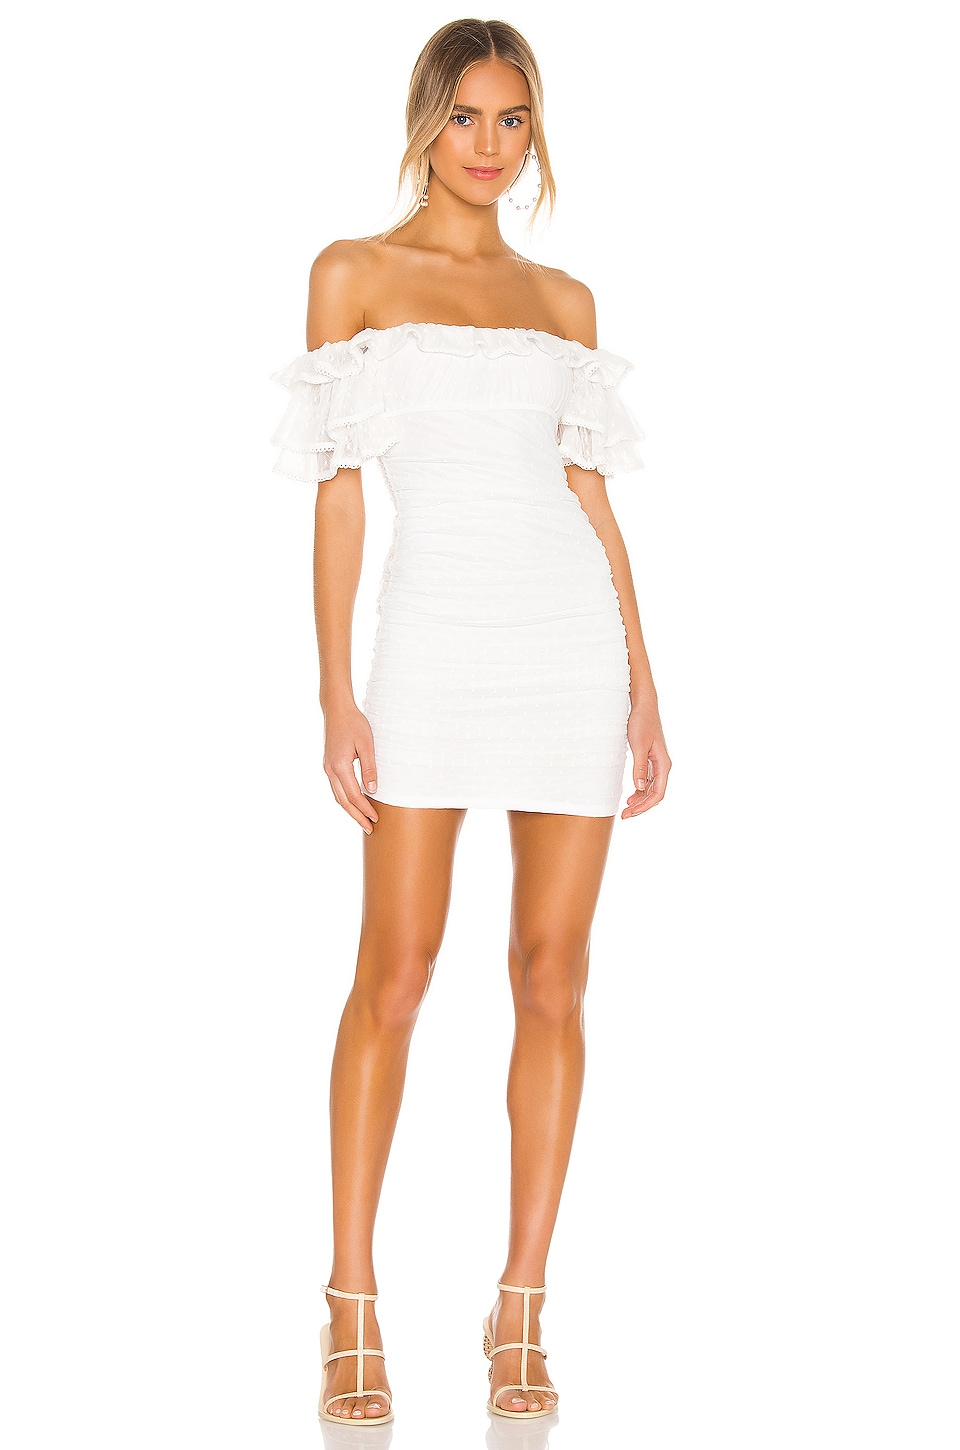 Eva Mini Dress             Camila Coelho                                                                                                       CA$ 300.48 12